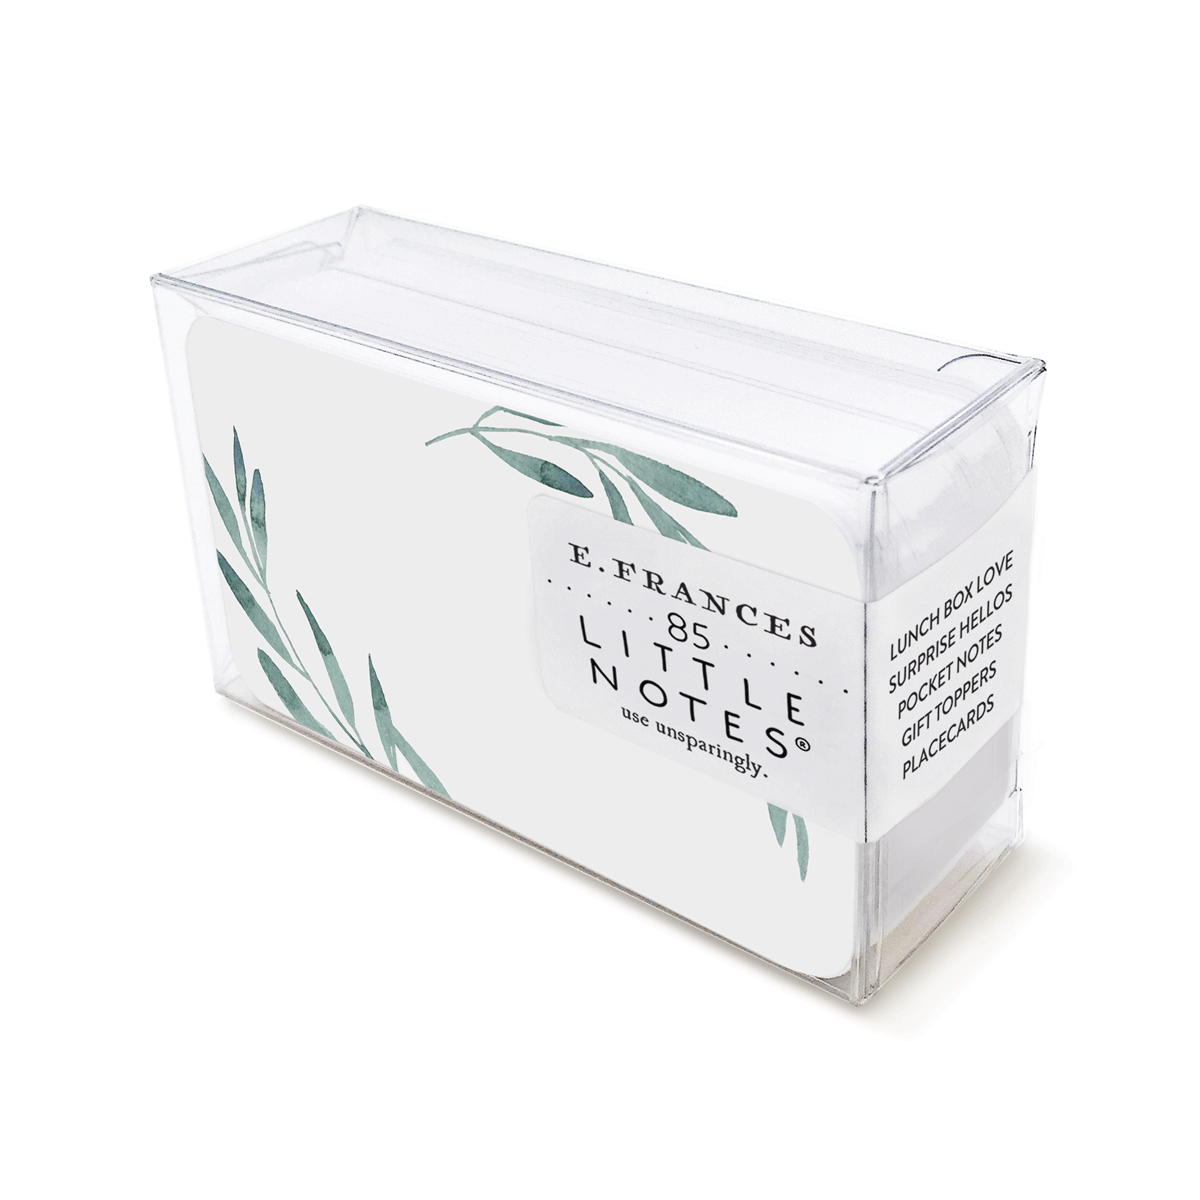 Olive Branches Little Notes®